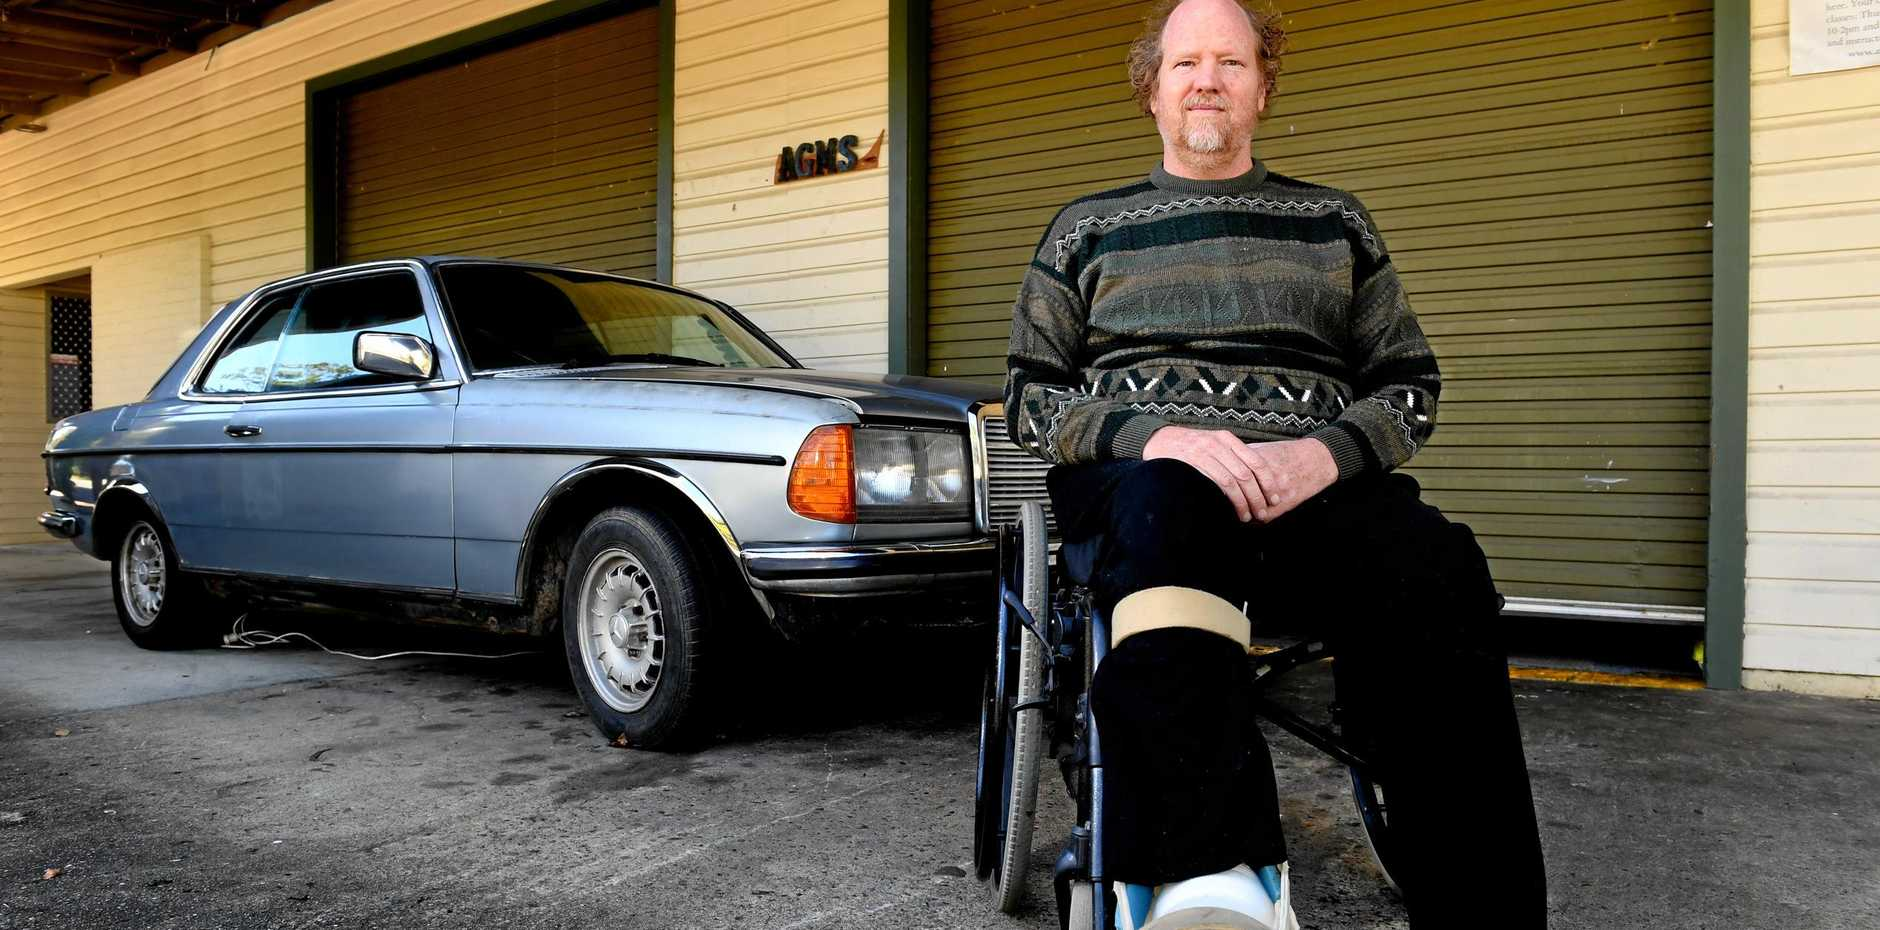 THANKS STRANGER: Ron Berry, of Murwullumbah, was saved by a good samaritan who got him to a hospital after he was involved in a car accident.